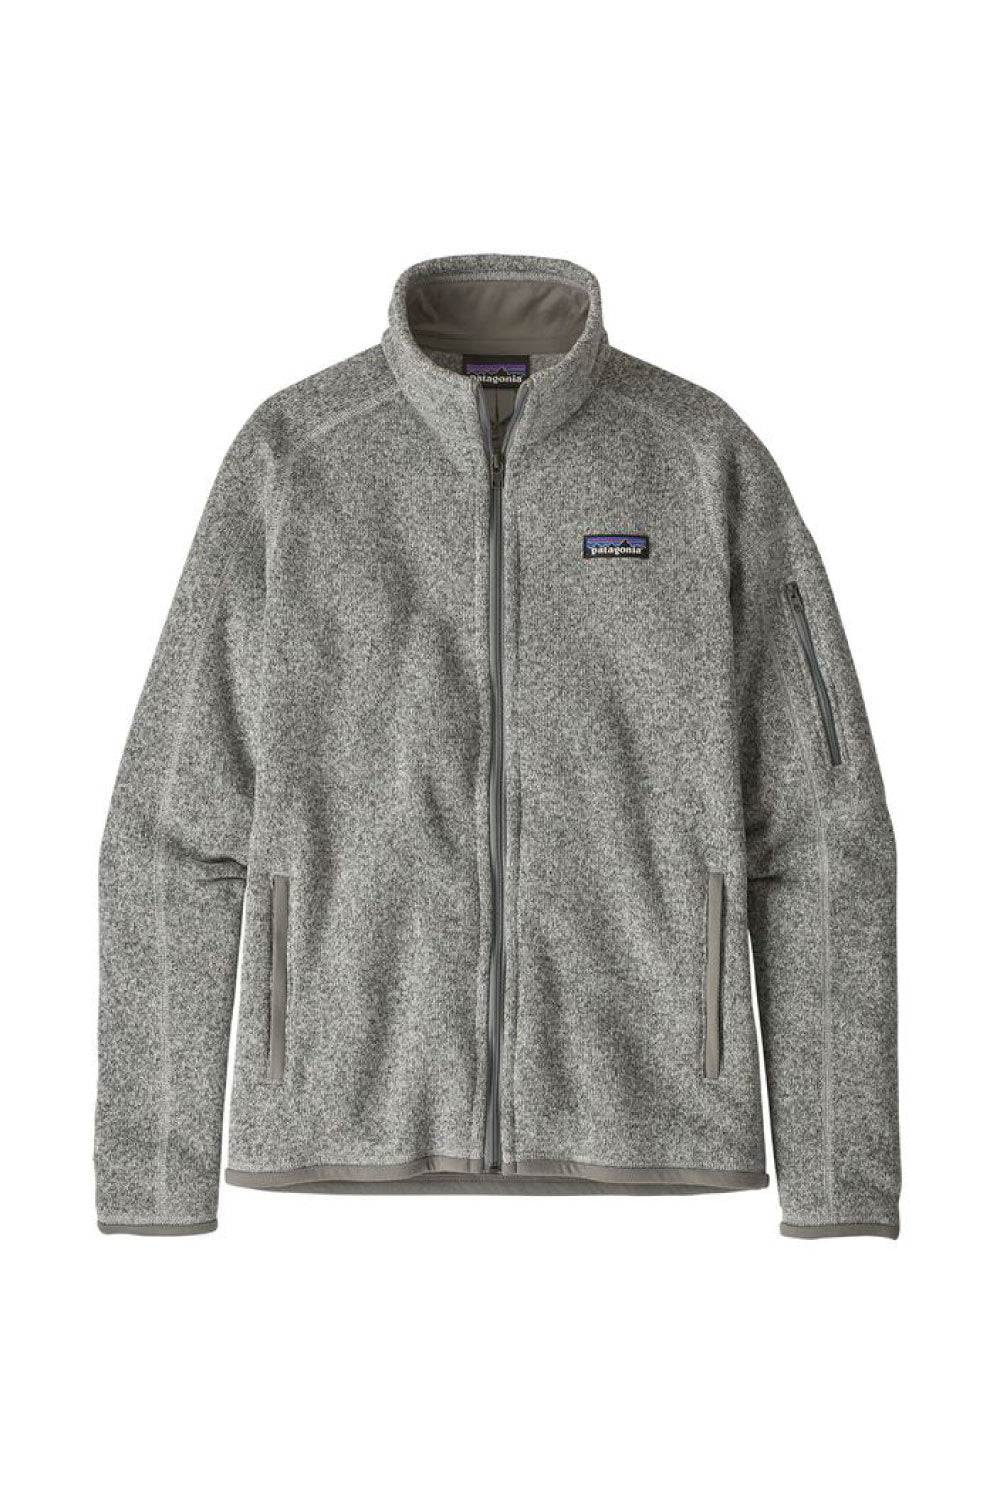 Patagonia Women's Better Sweater Jumper